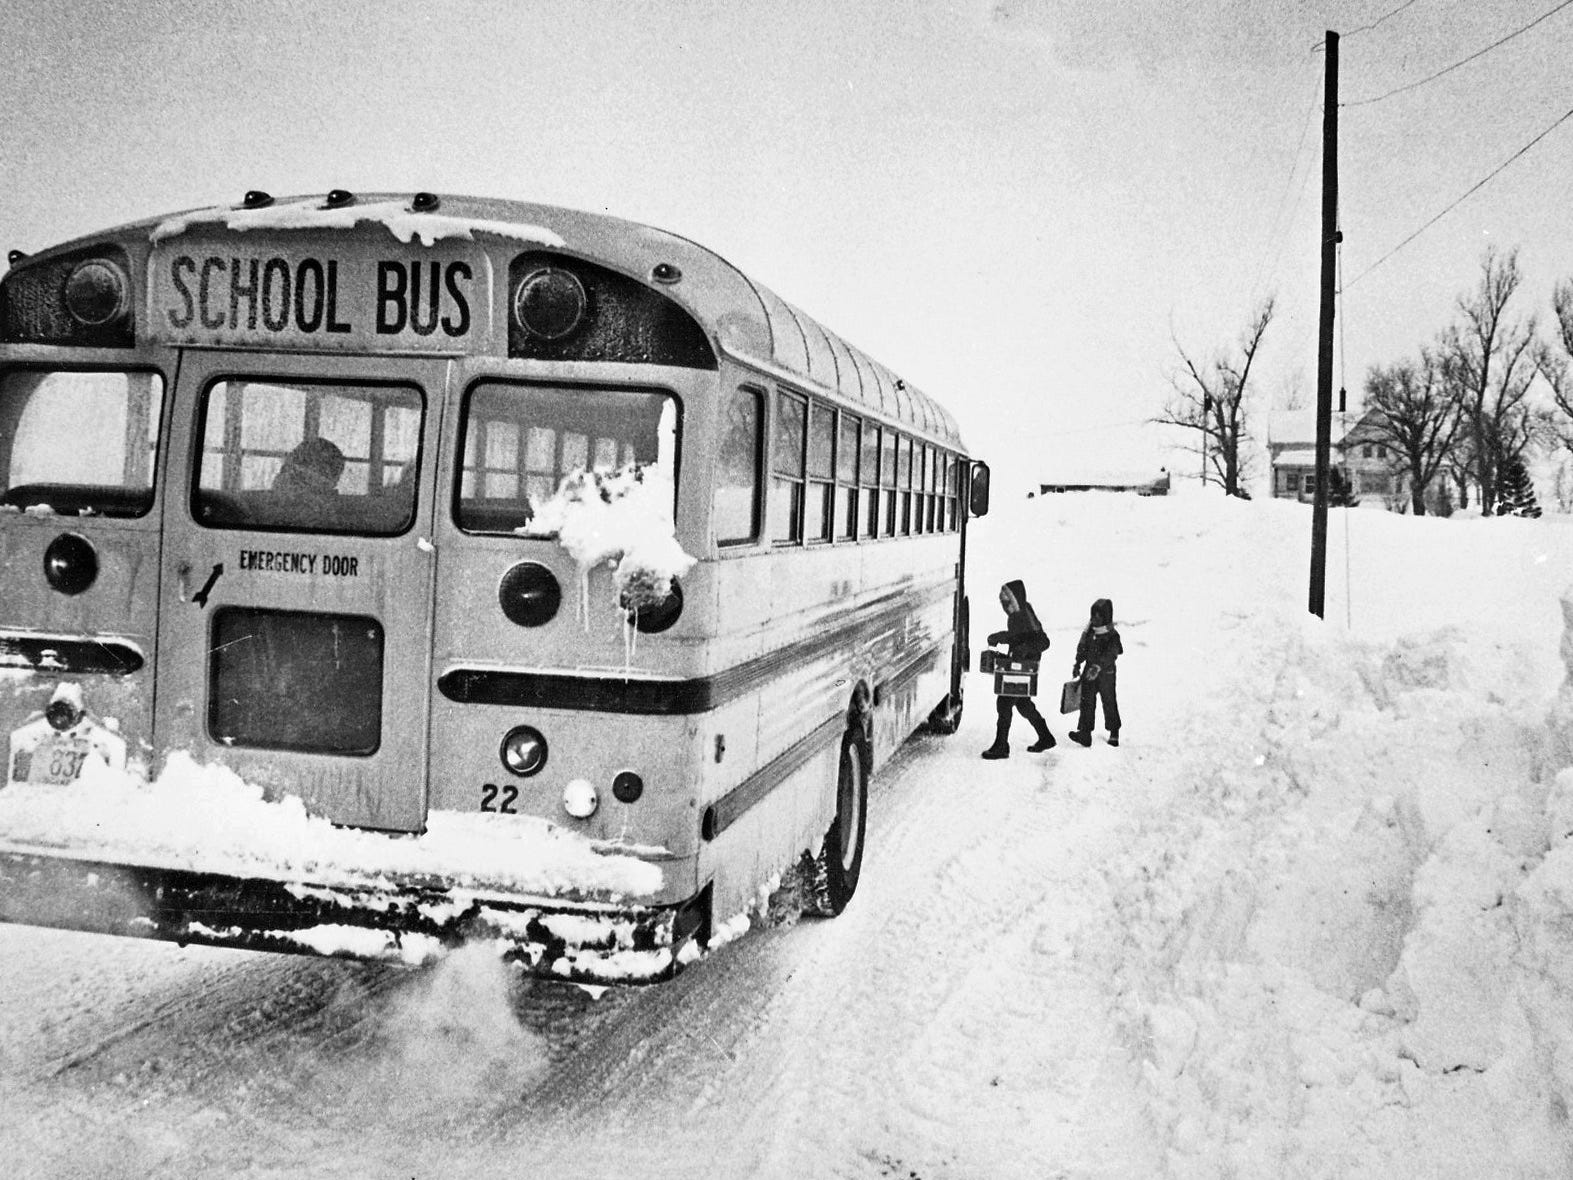 The schoolbus gets through in January 1979, a month in which Milwaukee got socked with three 10-inch-plus snowstorms. Some districts, including Milwaukee Public Schools, canceled school for several days after the storms, more for the brutal cold that followed than the blizzards.